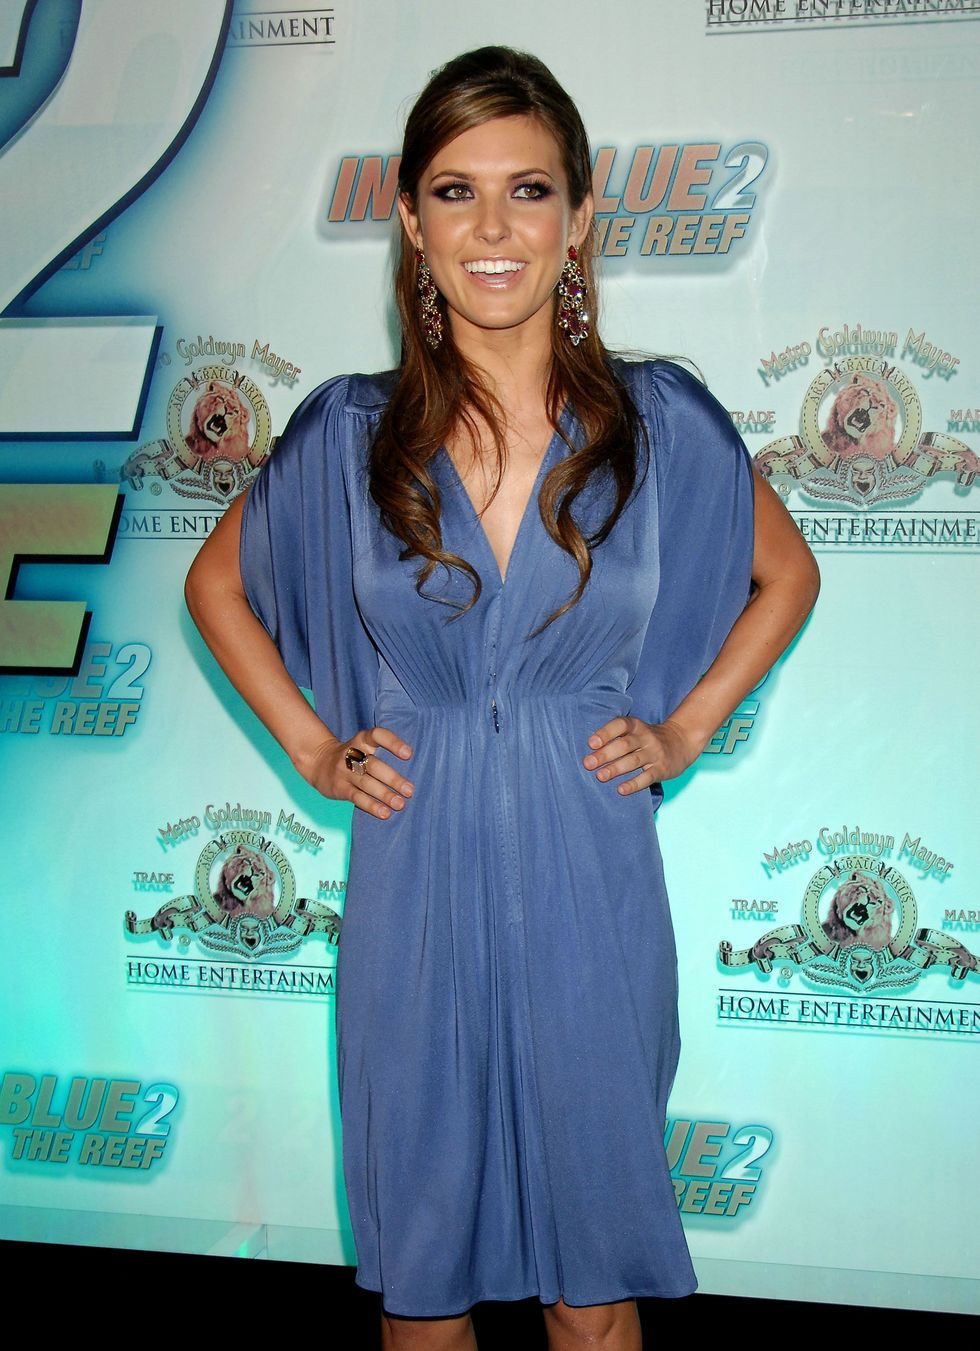 audrina-patridge-into-the-blue-2-the-reef-premiere-in-beverly-hills-05